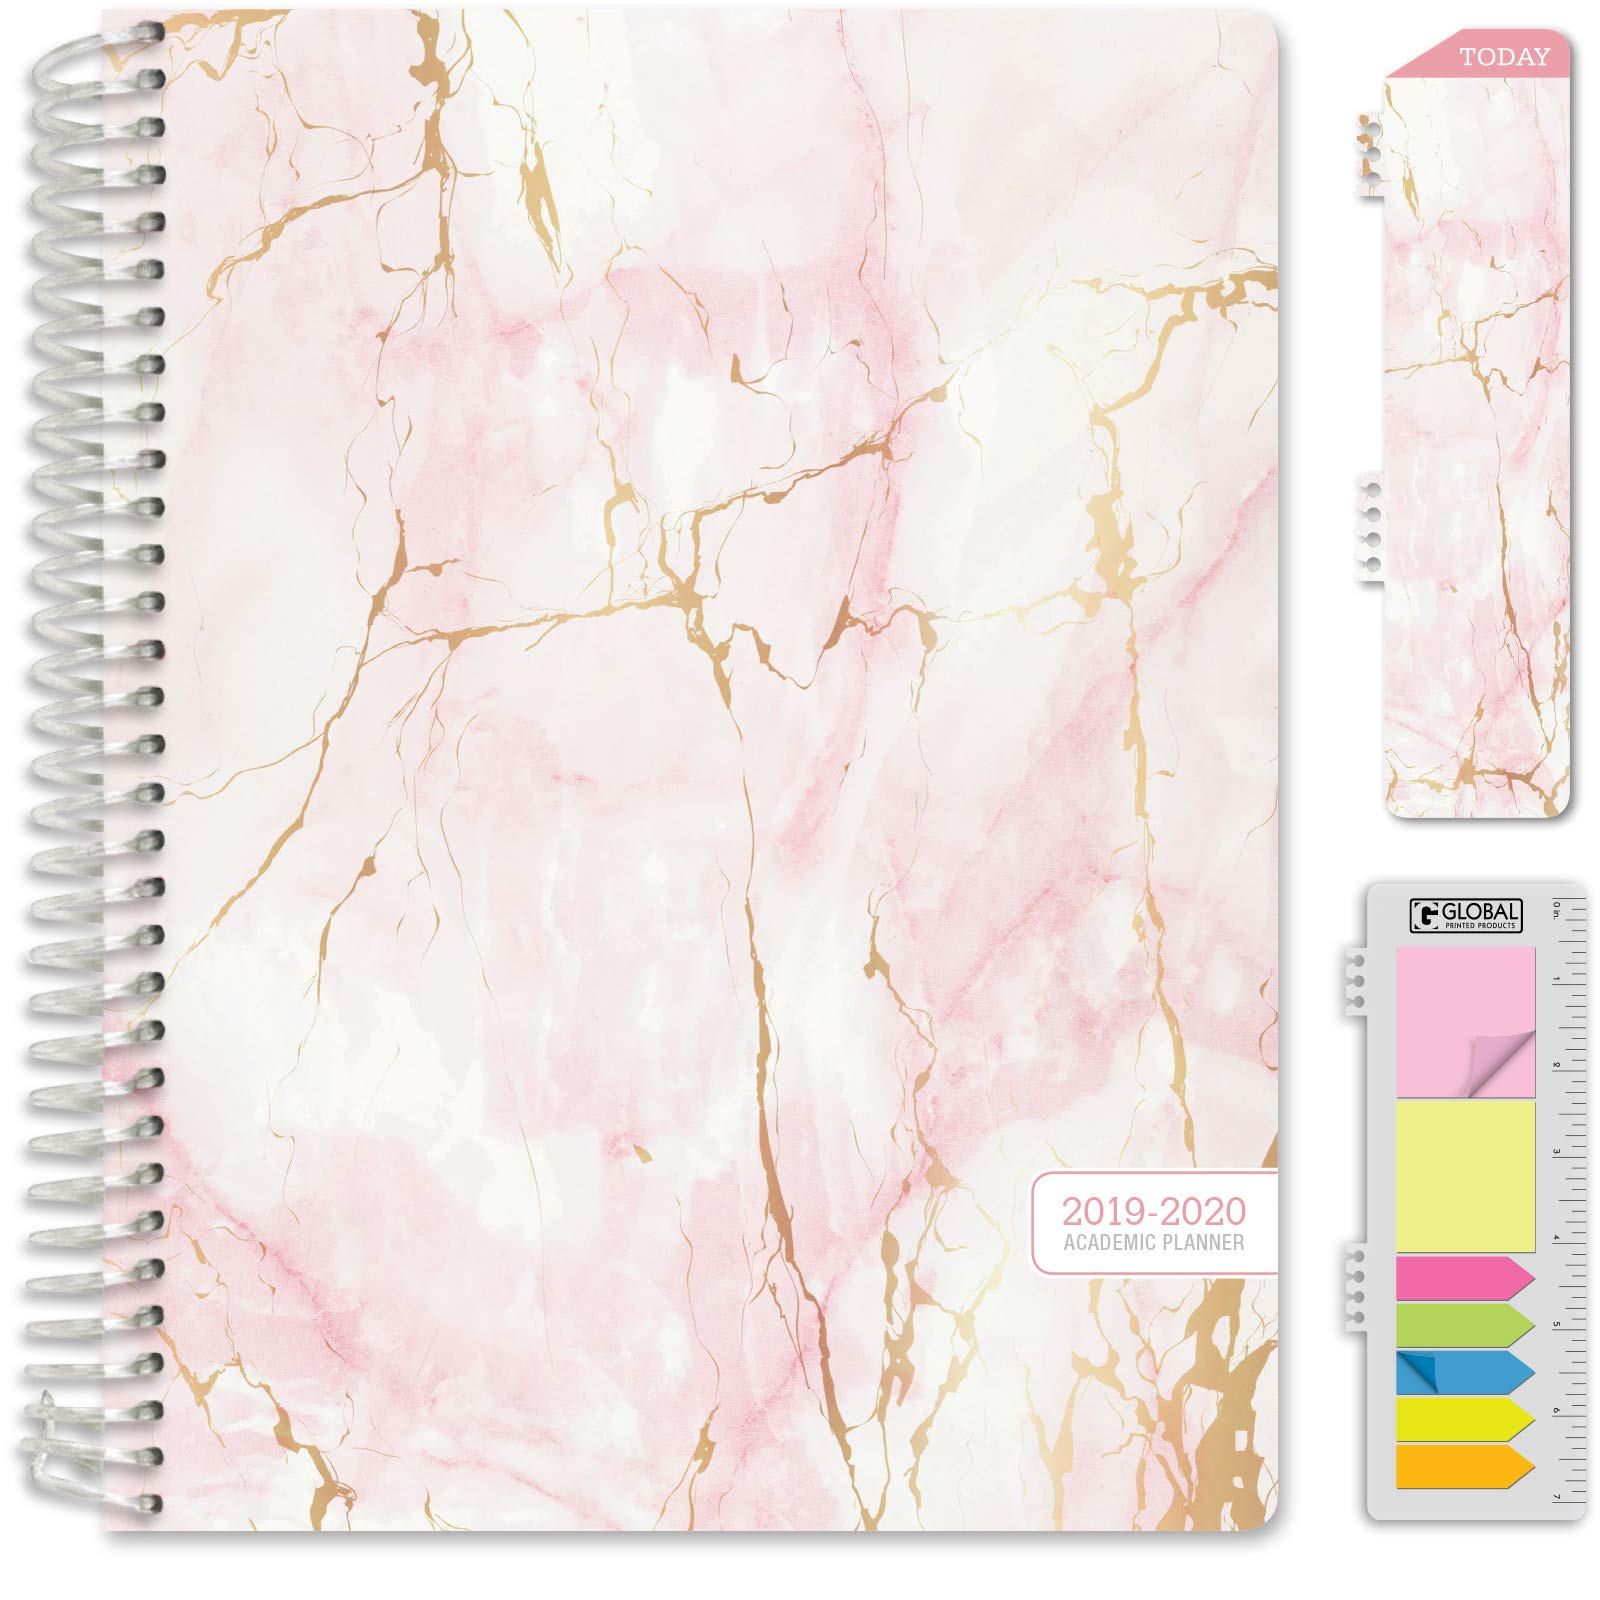 HARDCOVER Academic Year 2019-2020 Planner: (June 2019 Through July 2020) 8.5''x11'' Daily Weekly Monthly Planner Yearly Agenda. Bonus Bookmark, Pocket Folder and Sticky Note Set (Pink Marble)